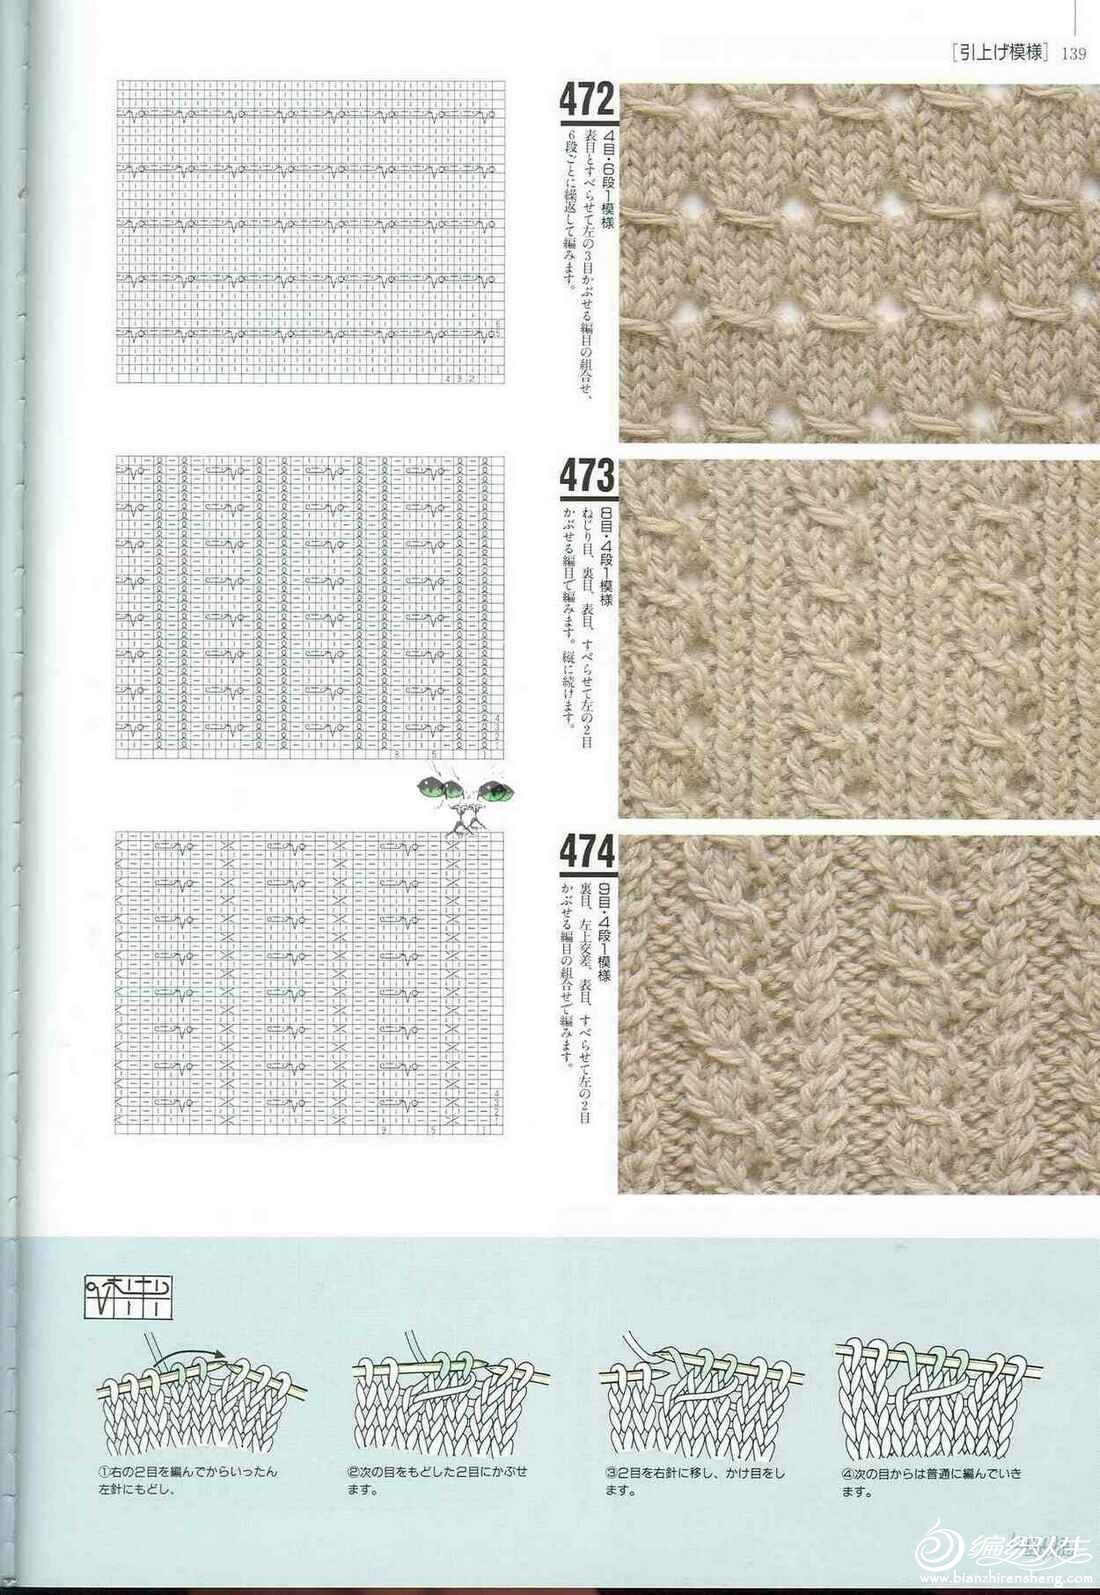 Knitting Patterns 500 136.jpg